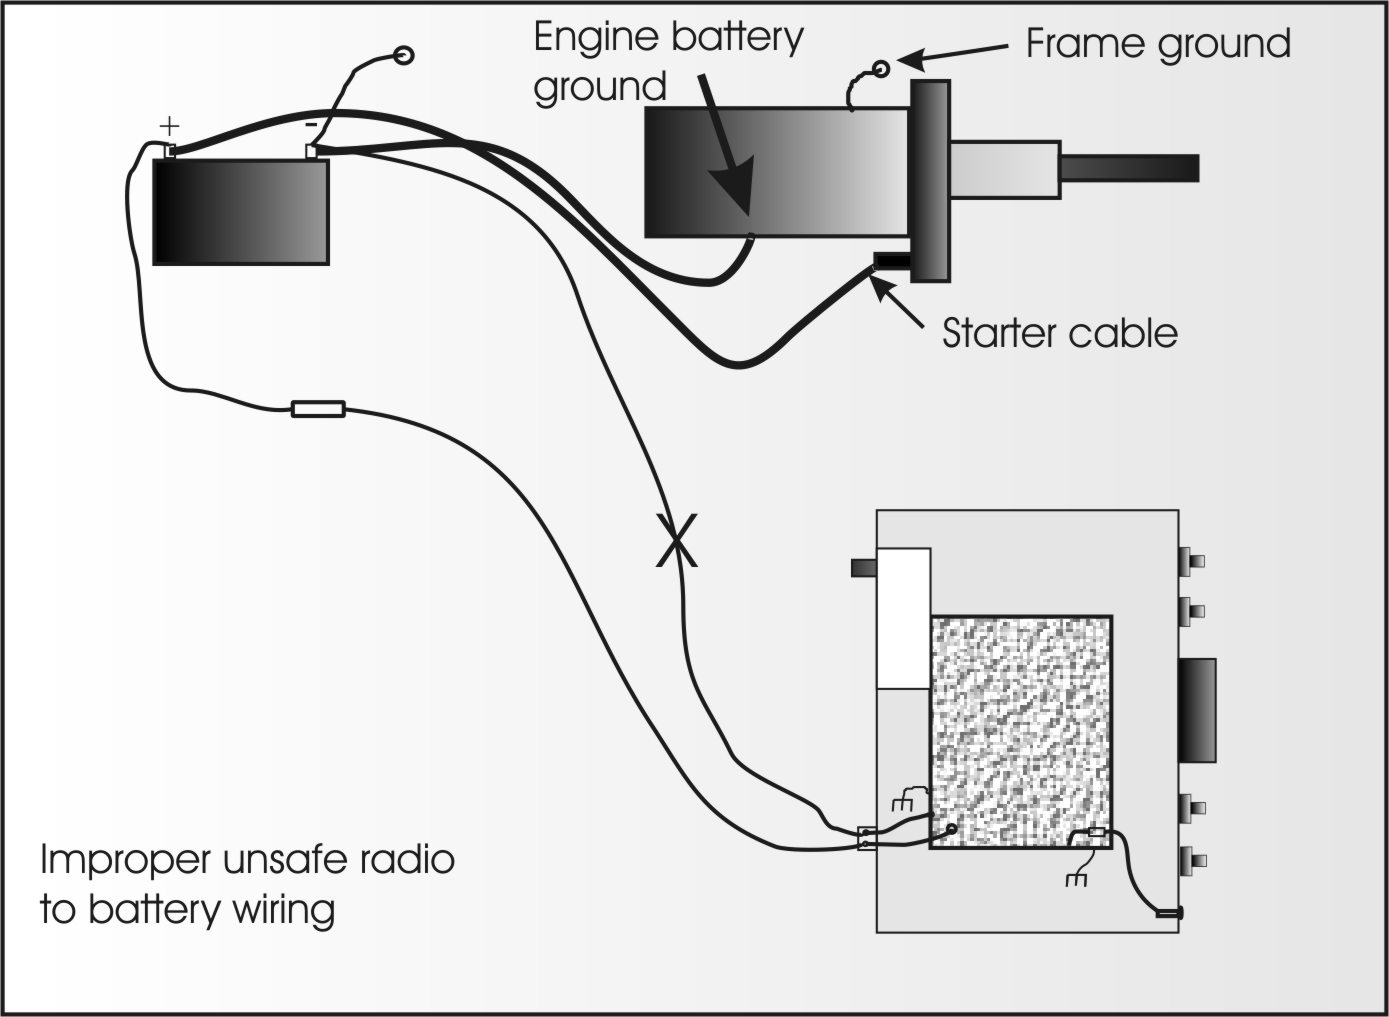 Wiring Cb Radio To Car Battery Diagrams Explained 5 Pin Microphone Diagram Mobile And Grounding Rh W8ji Com Cobra Mic